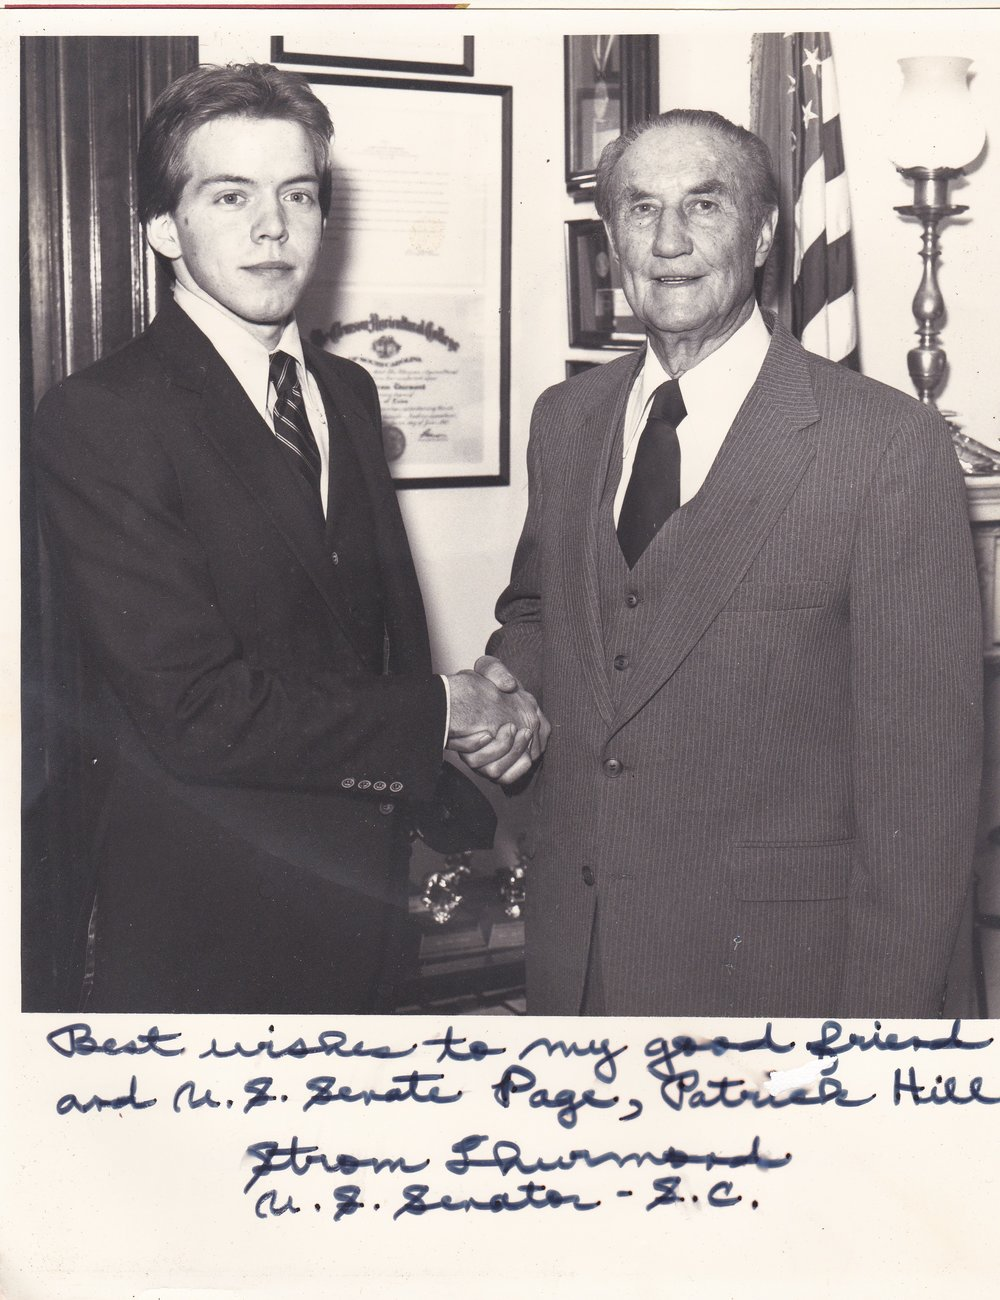 PatrickLHill.Com   - Patrick L. Hill and US Senator Strom Thurmond in Washington office during January 1981 as Senate Office Page. Patrick is our owner.